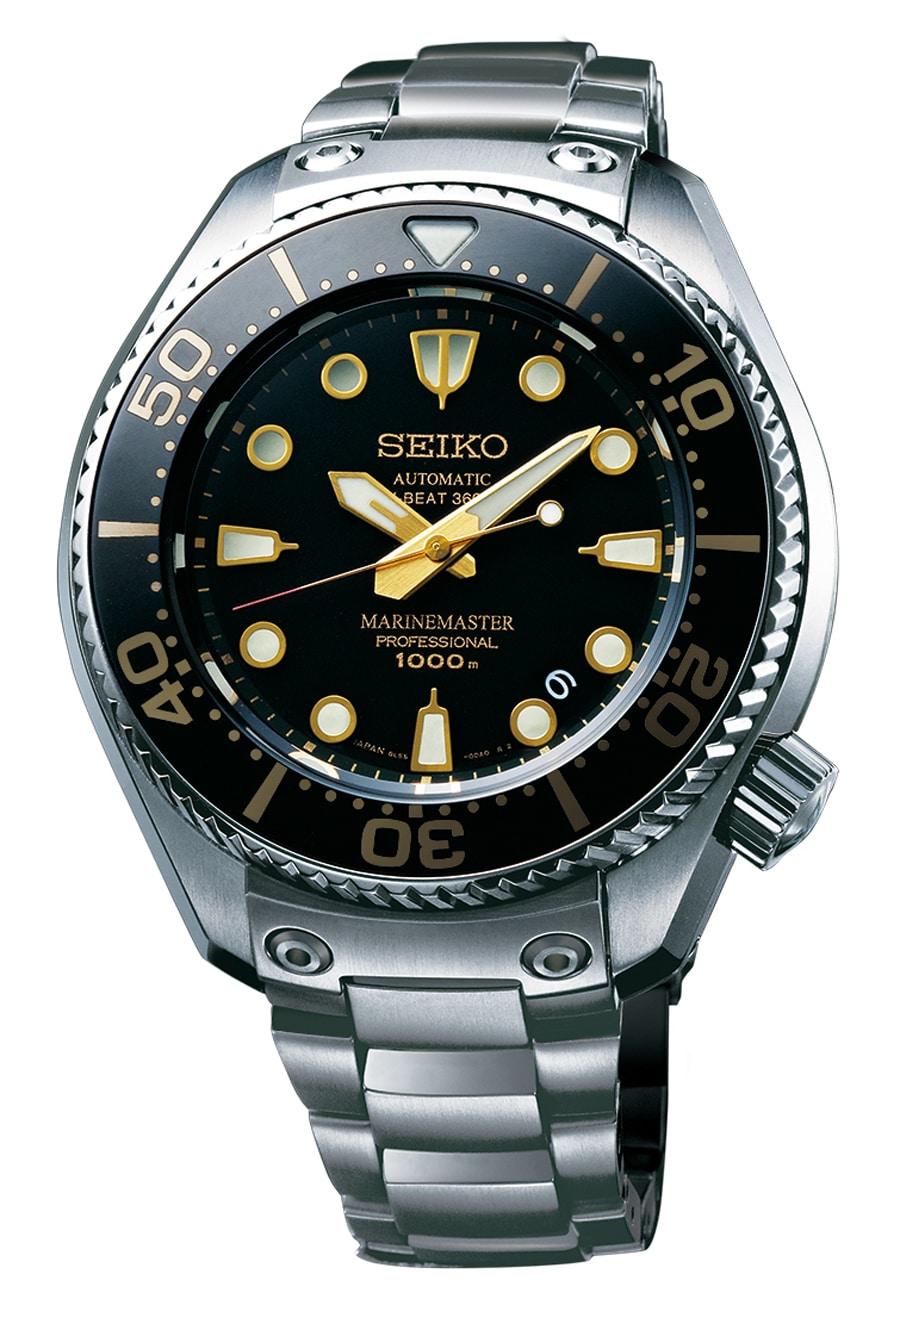 Seiko: Marinemaster Professional 1000 m Diver's Hi-Beat 36.000 Limited Edition SBEX001